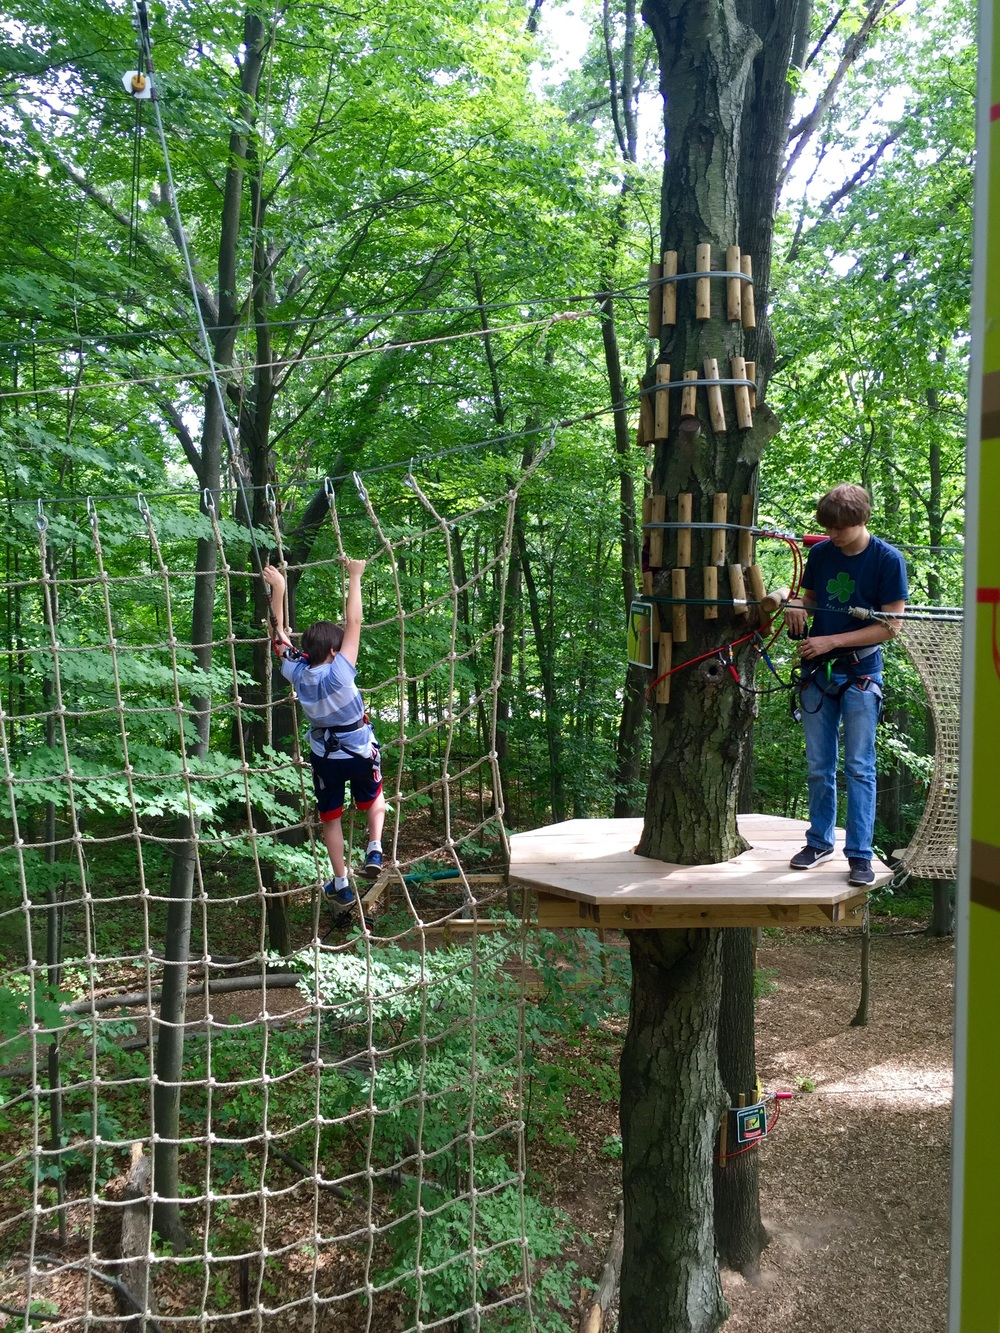 Go Ape Review. The Entertaining House. All images shot with iPhone 6. Alexander, 10, has just landed his Tarzan free-fall jump and climbs over to the tree as Christopher prepares his next task.